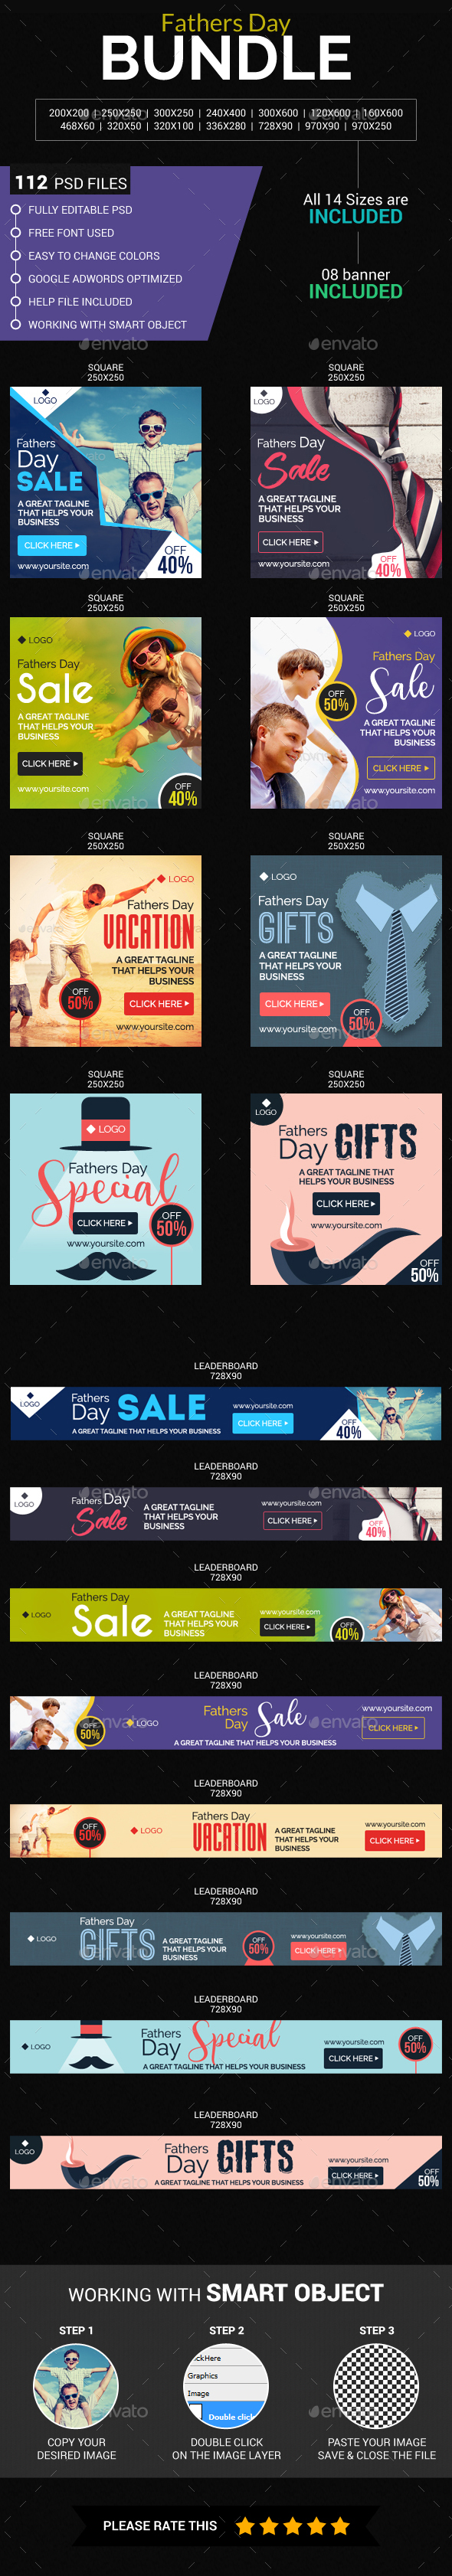 Fathers Day Bundle - Banners & Ads Web Elements